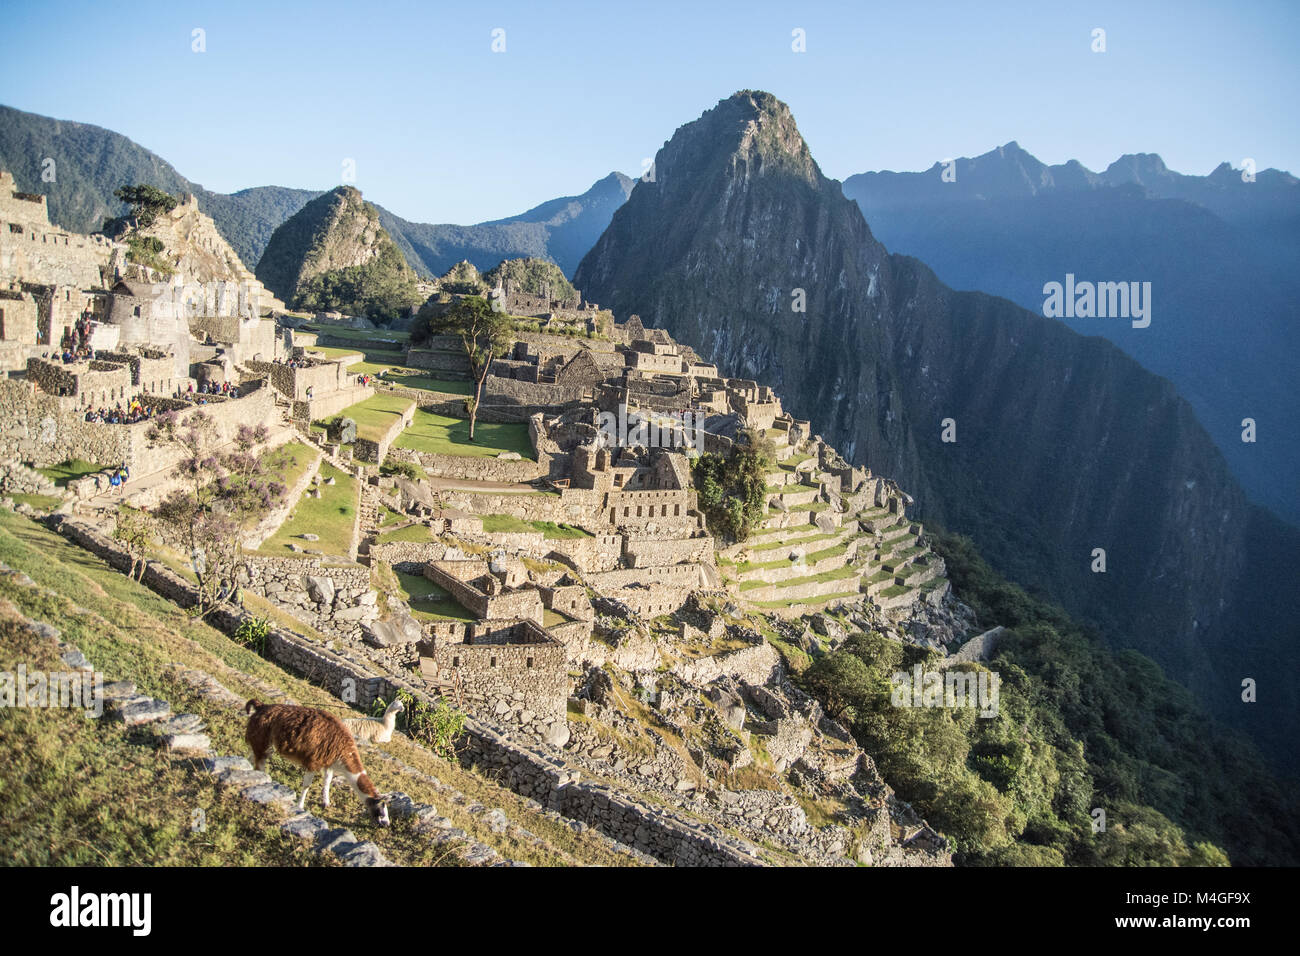 Ruins of Machu Picchu city in the morning, Peru - Stock Image